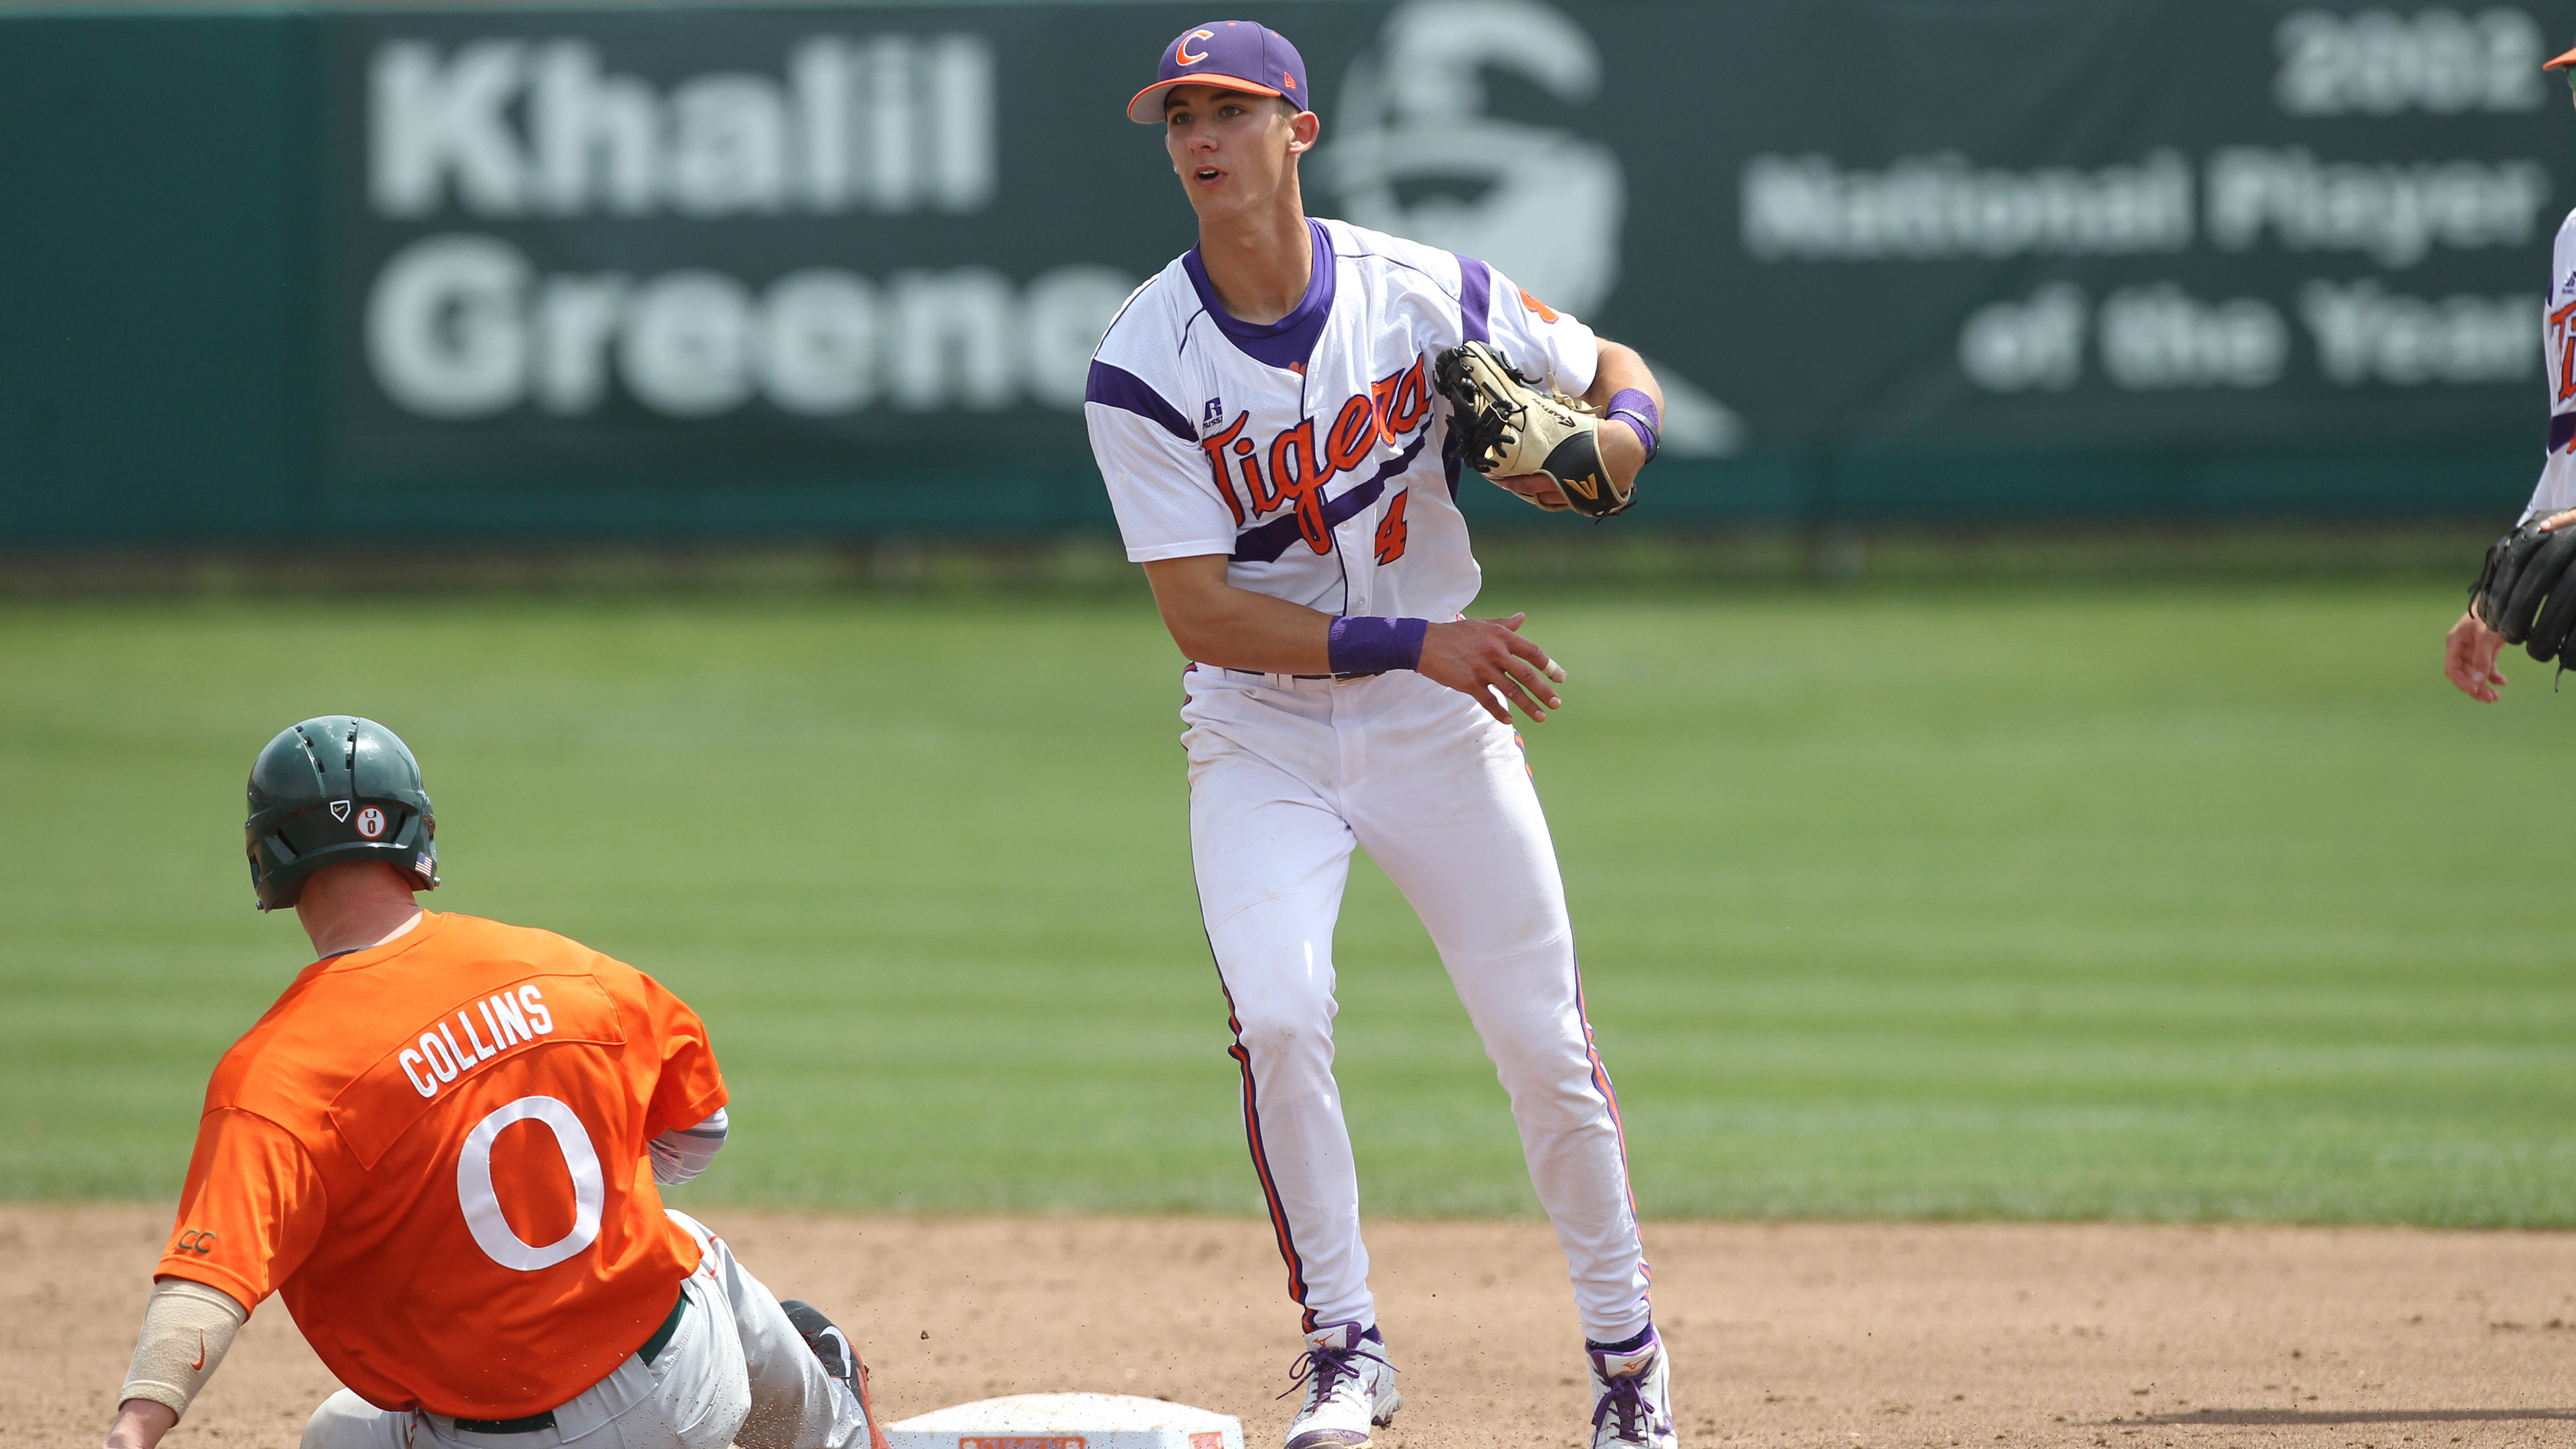 No. 11 Hurricanes Defeat No. 20 Tigers 10-2 Sunday to Sweep Series